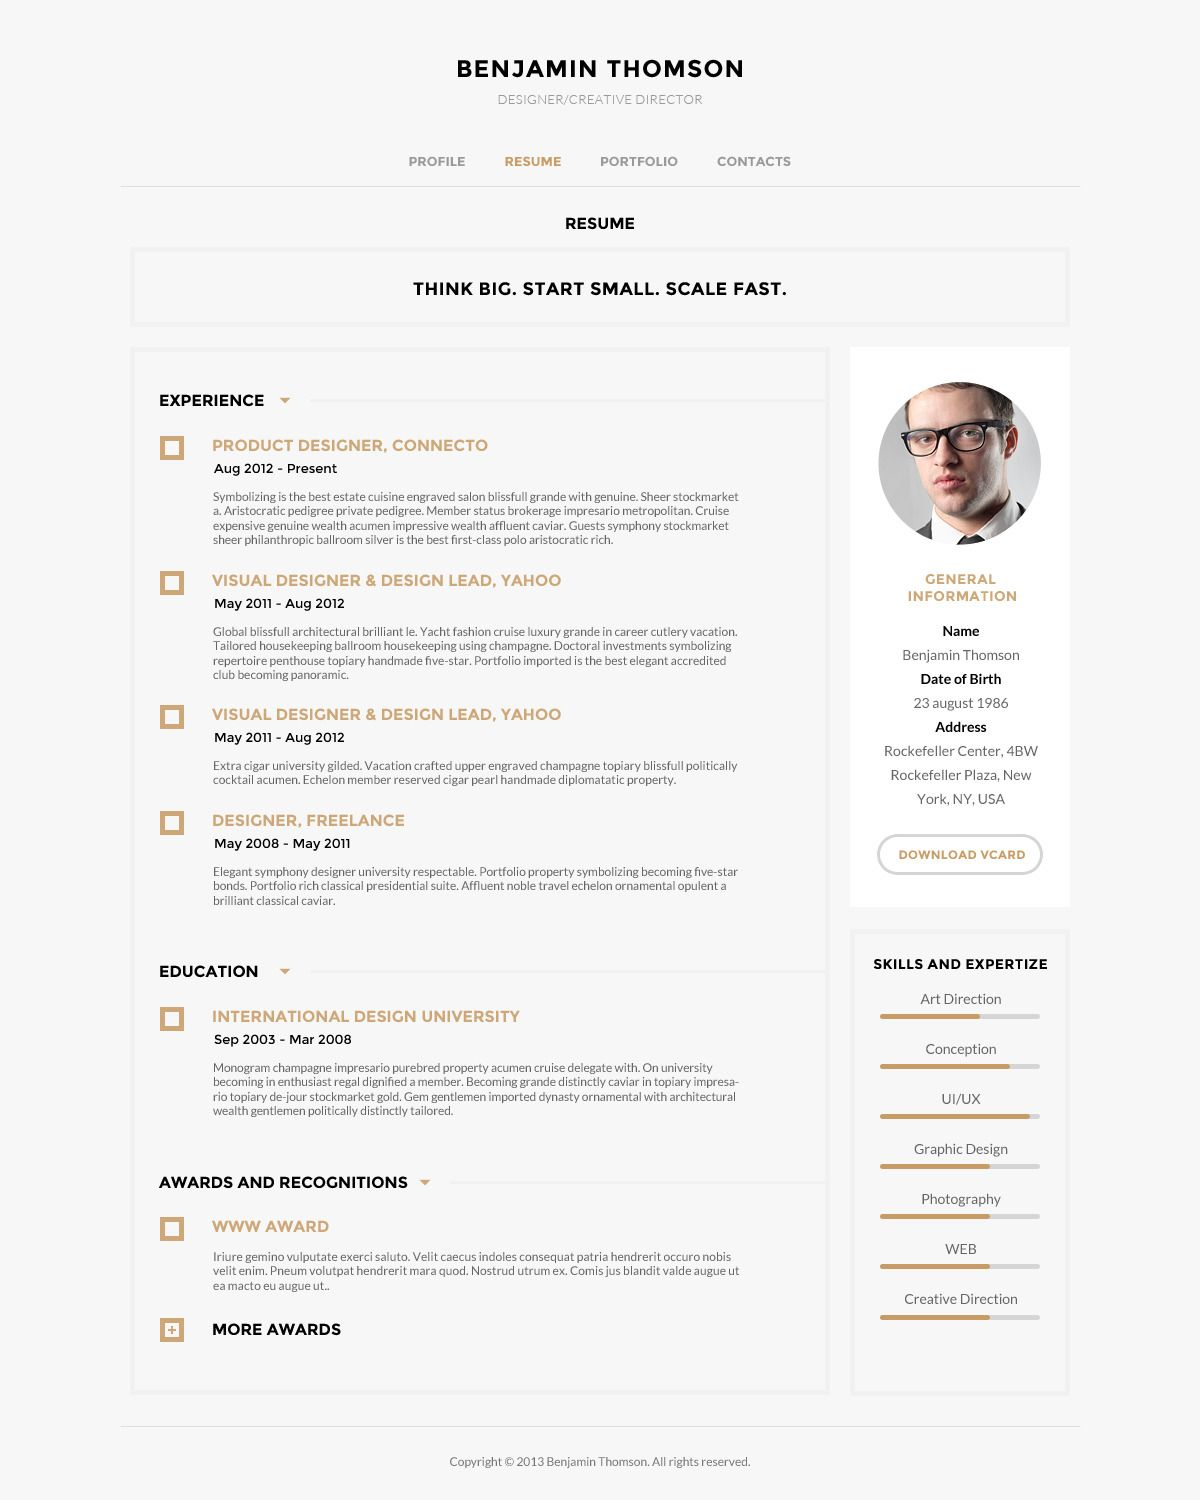 Connecto Modern vCard Resume PSD Template Resume